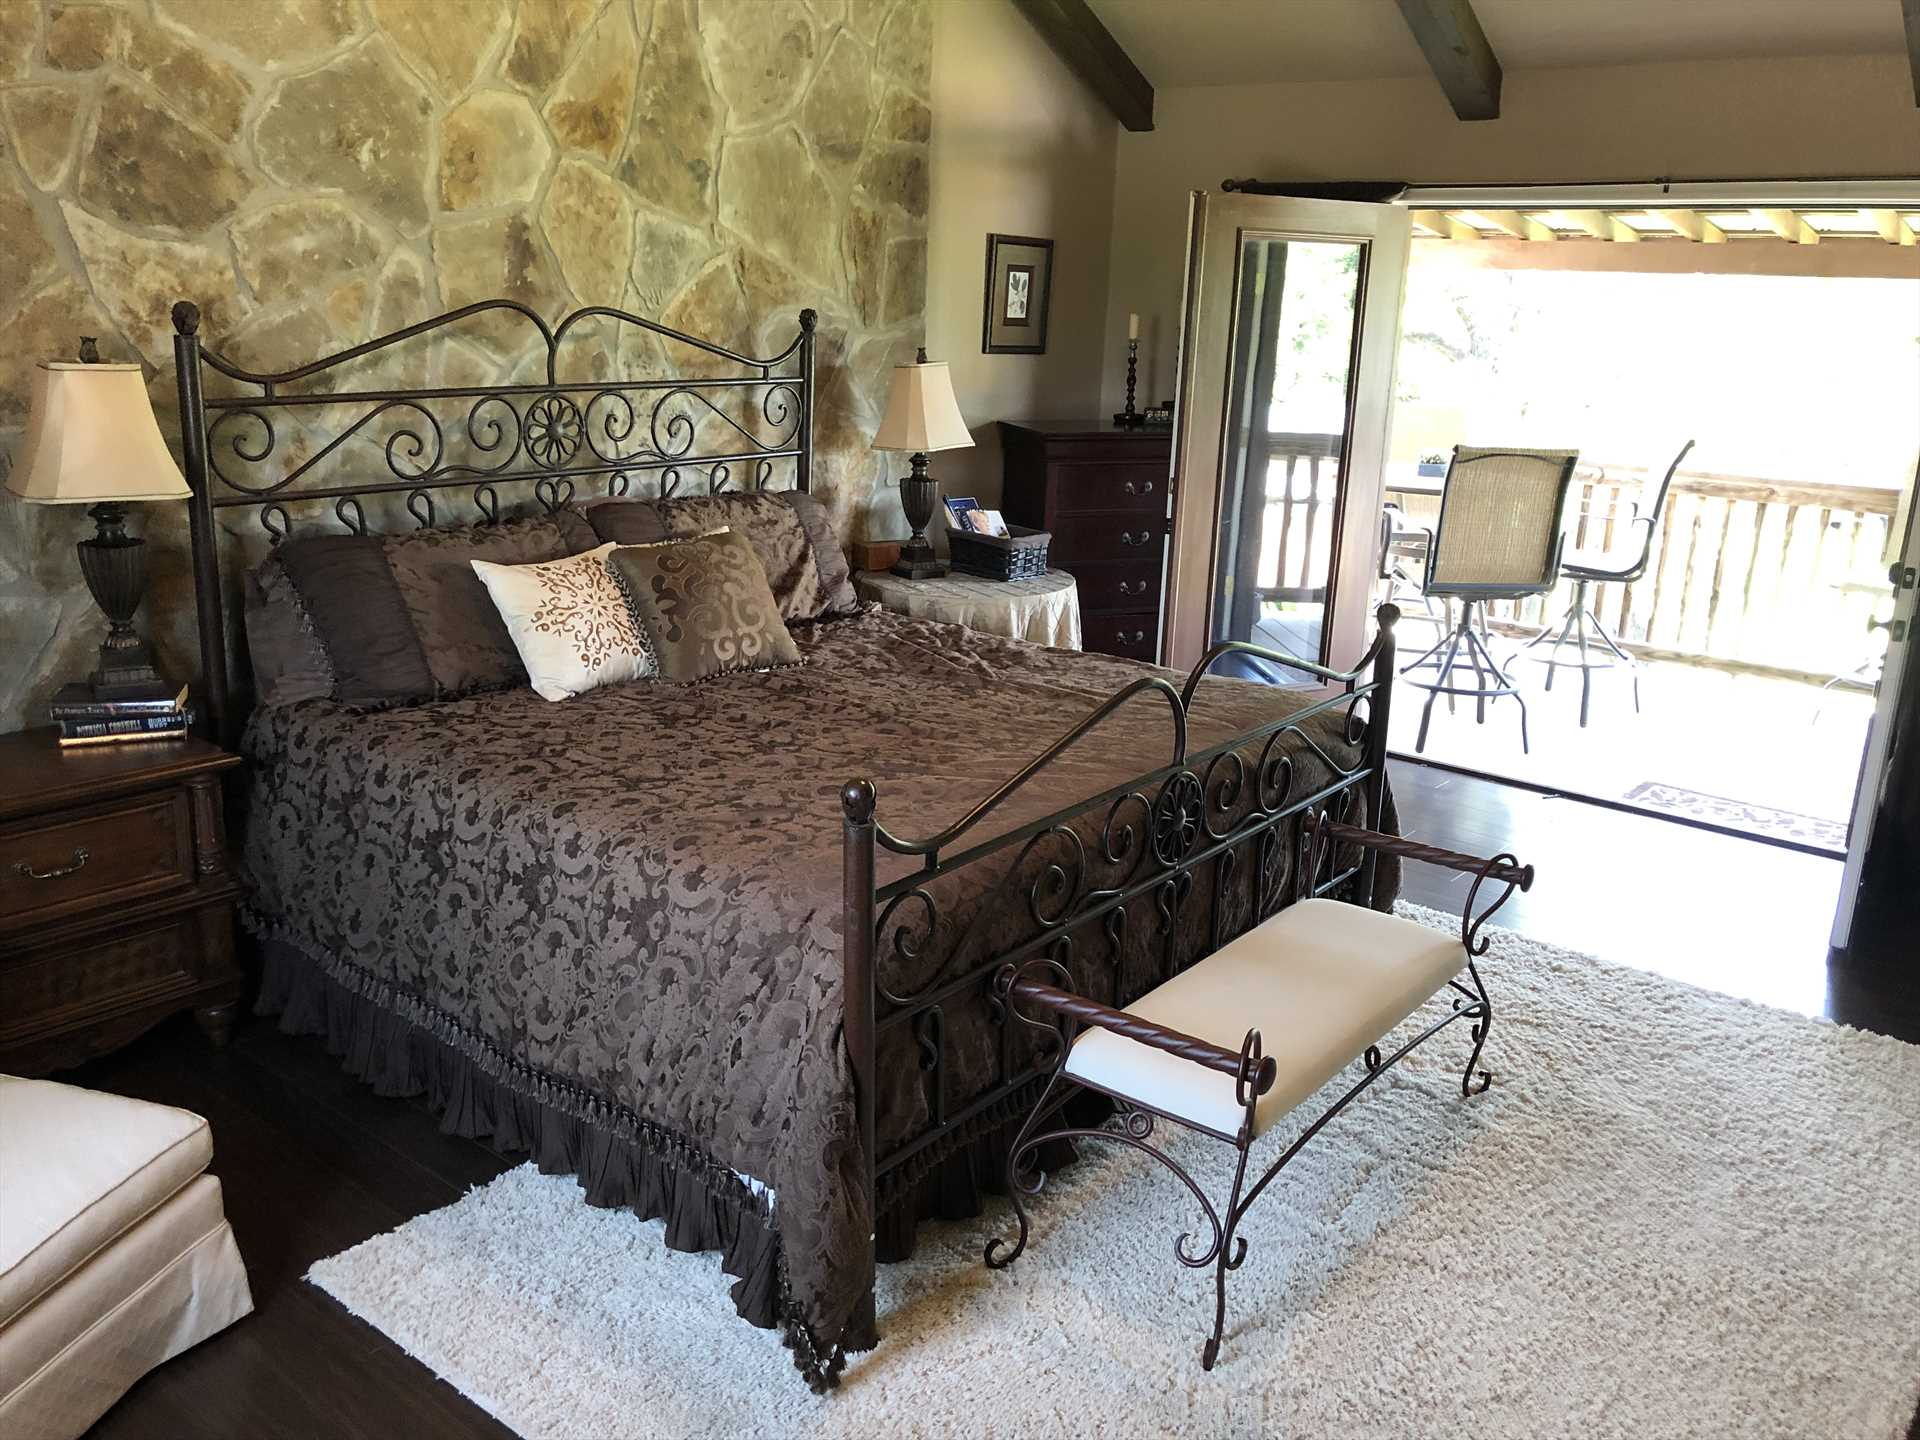 Sleep like royalty on the big king-sized bed in the master bedroom! All sleeping accommodations here come with clean and comfy linens.